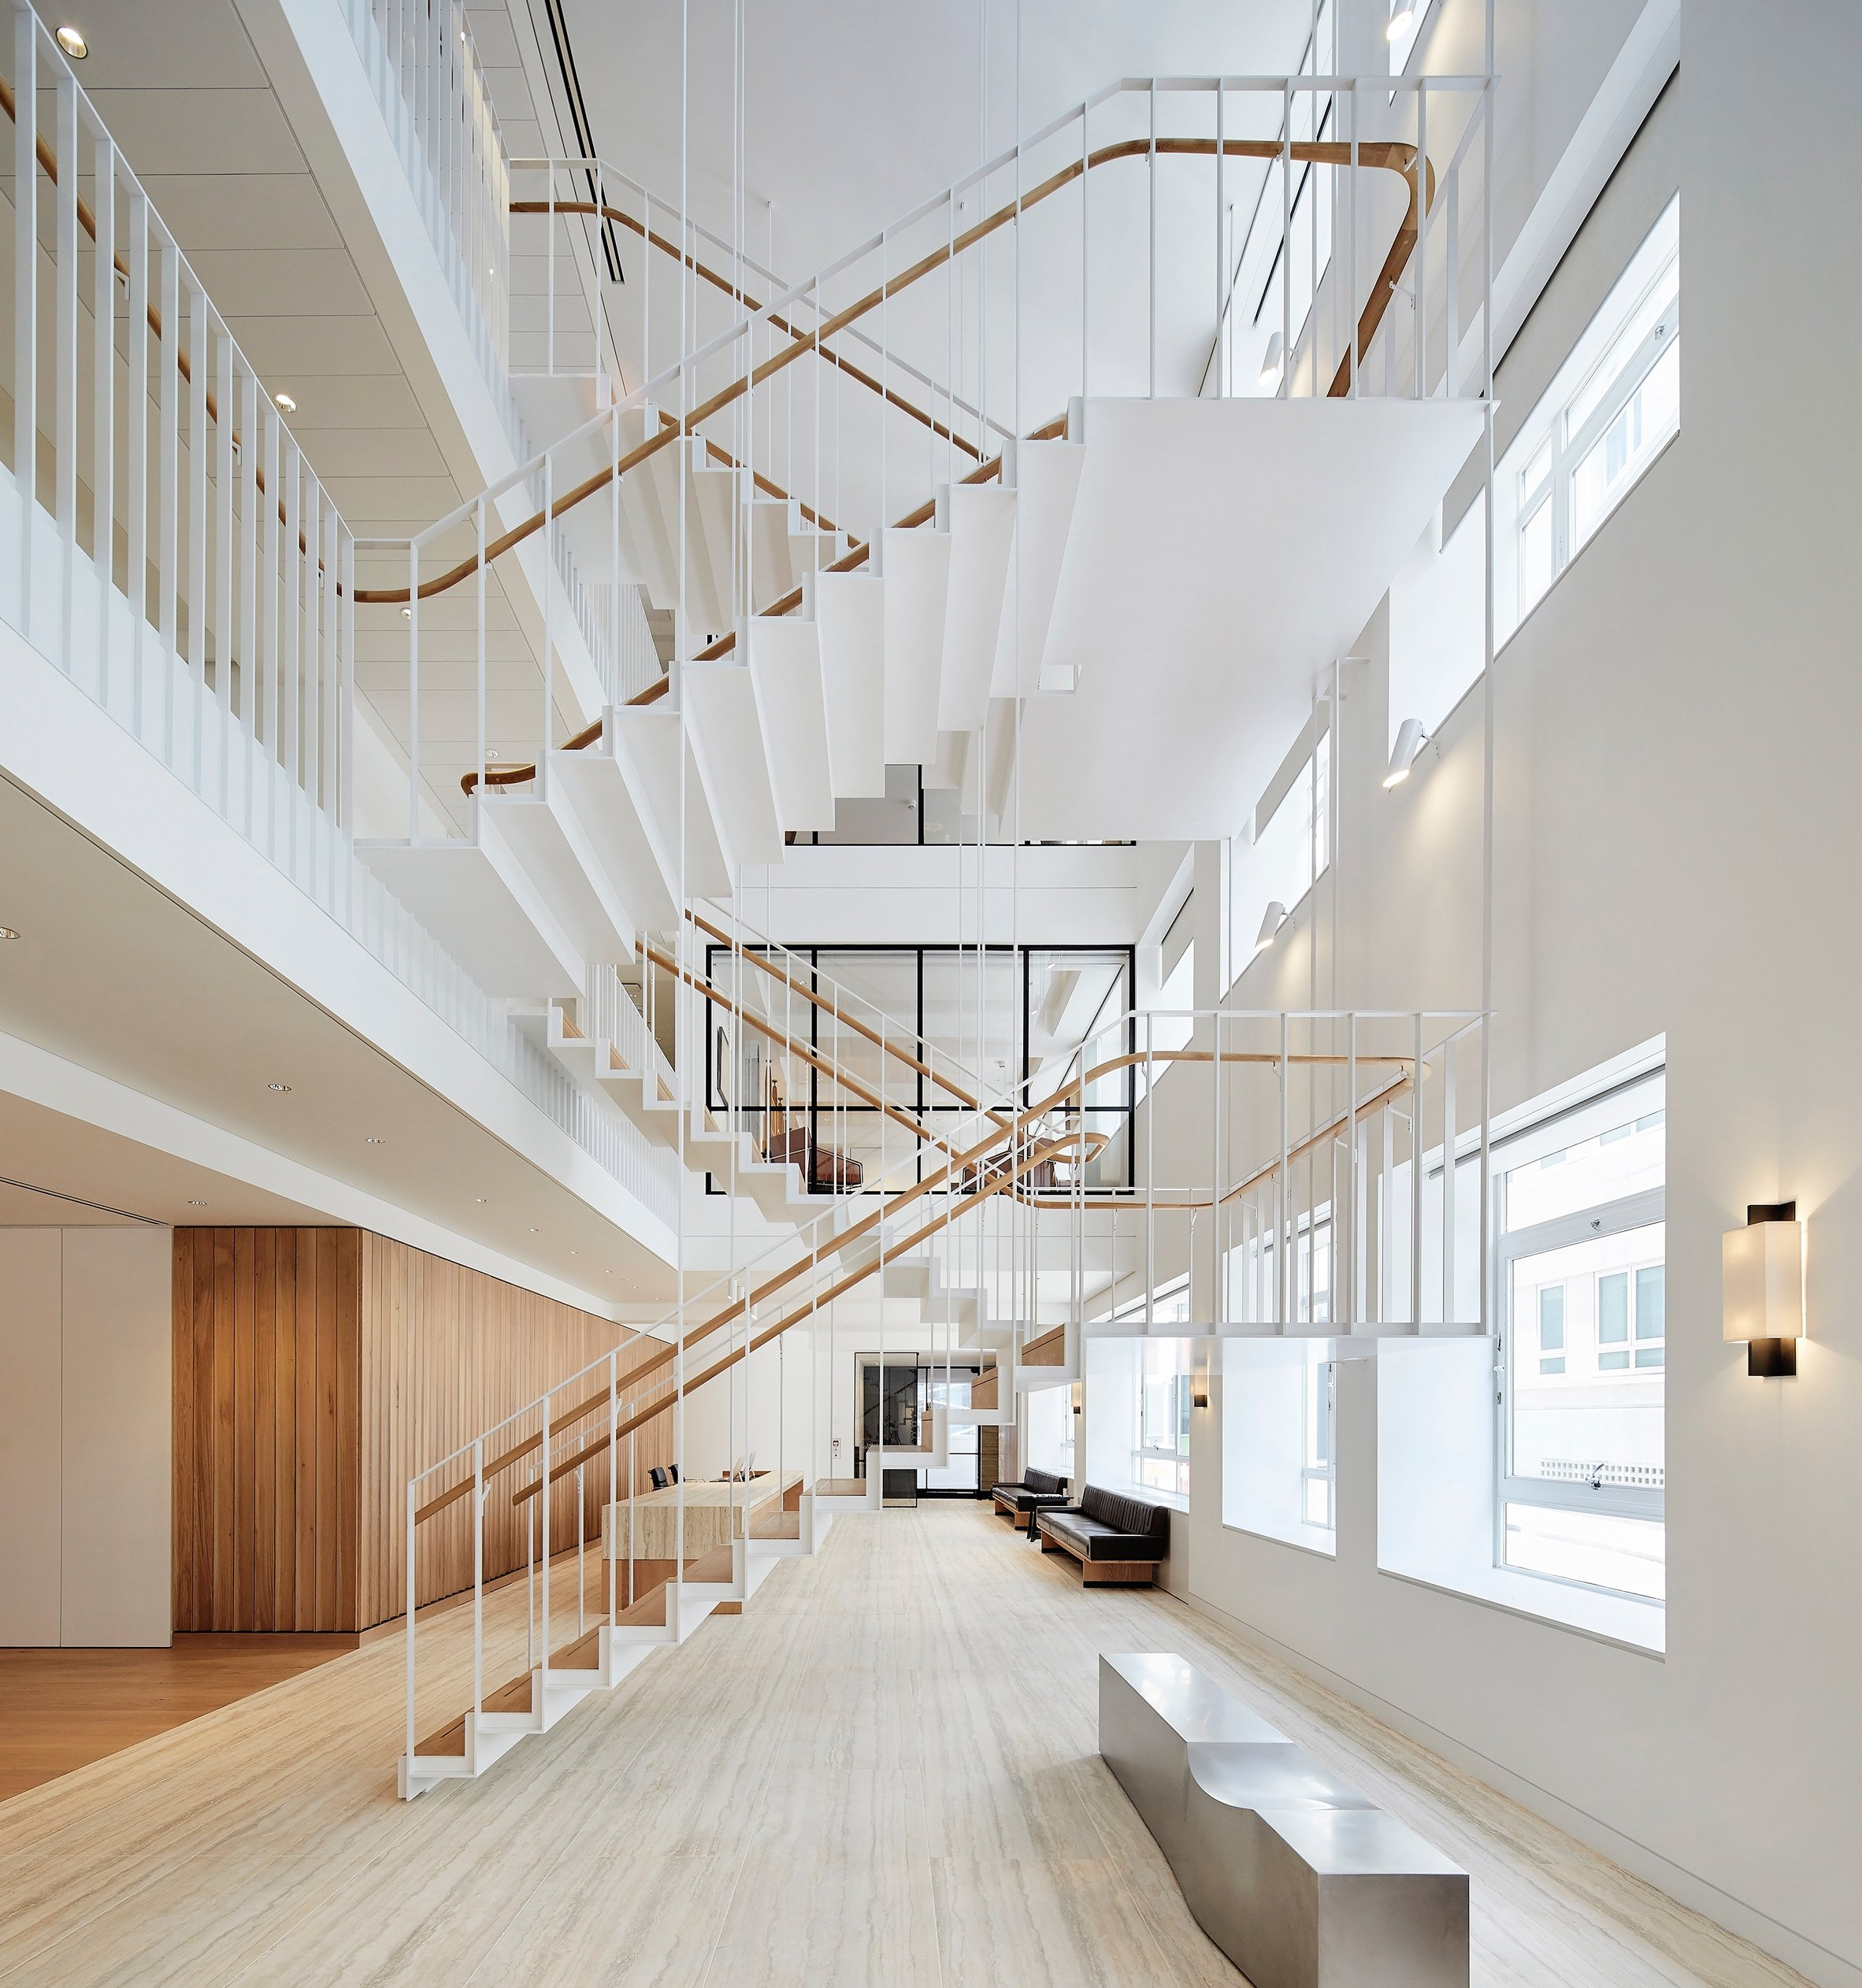 Piercy & Company suspends steel staircase in new atrium of Savile Row office